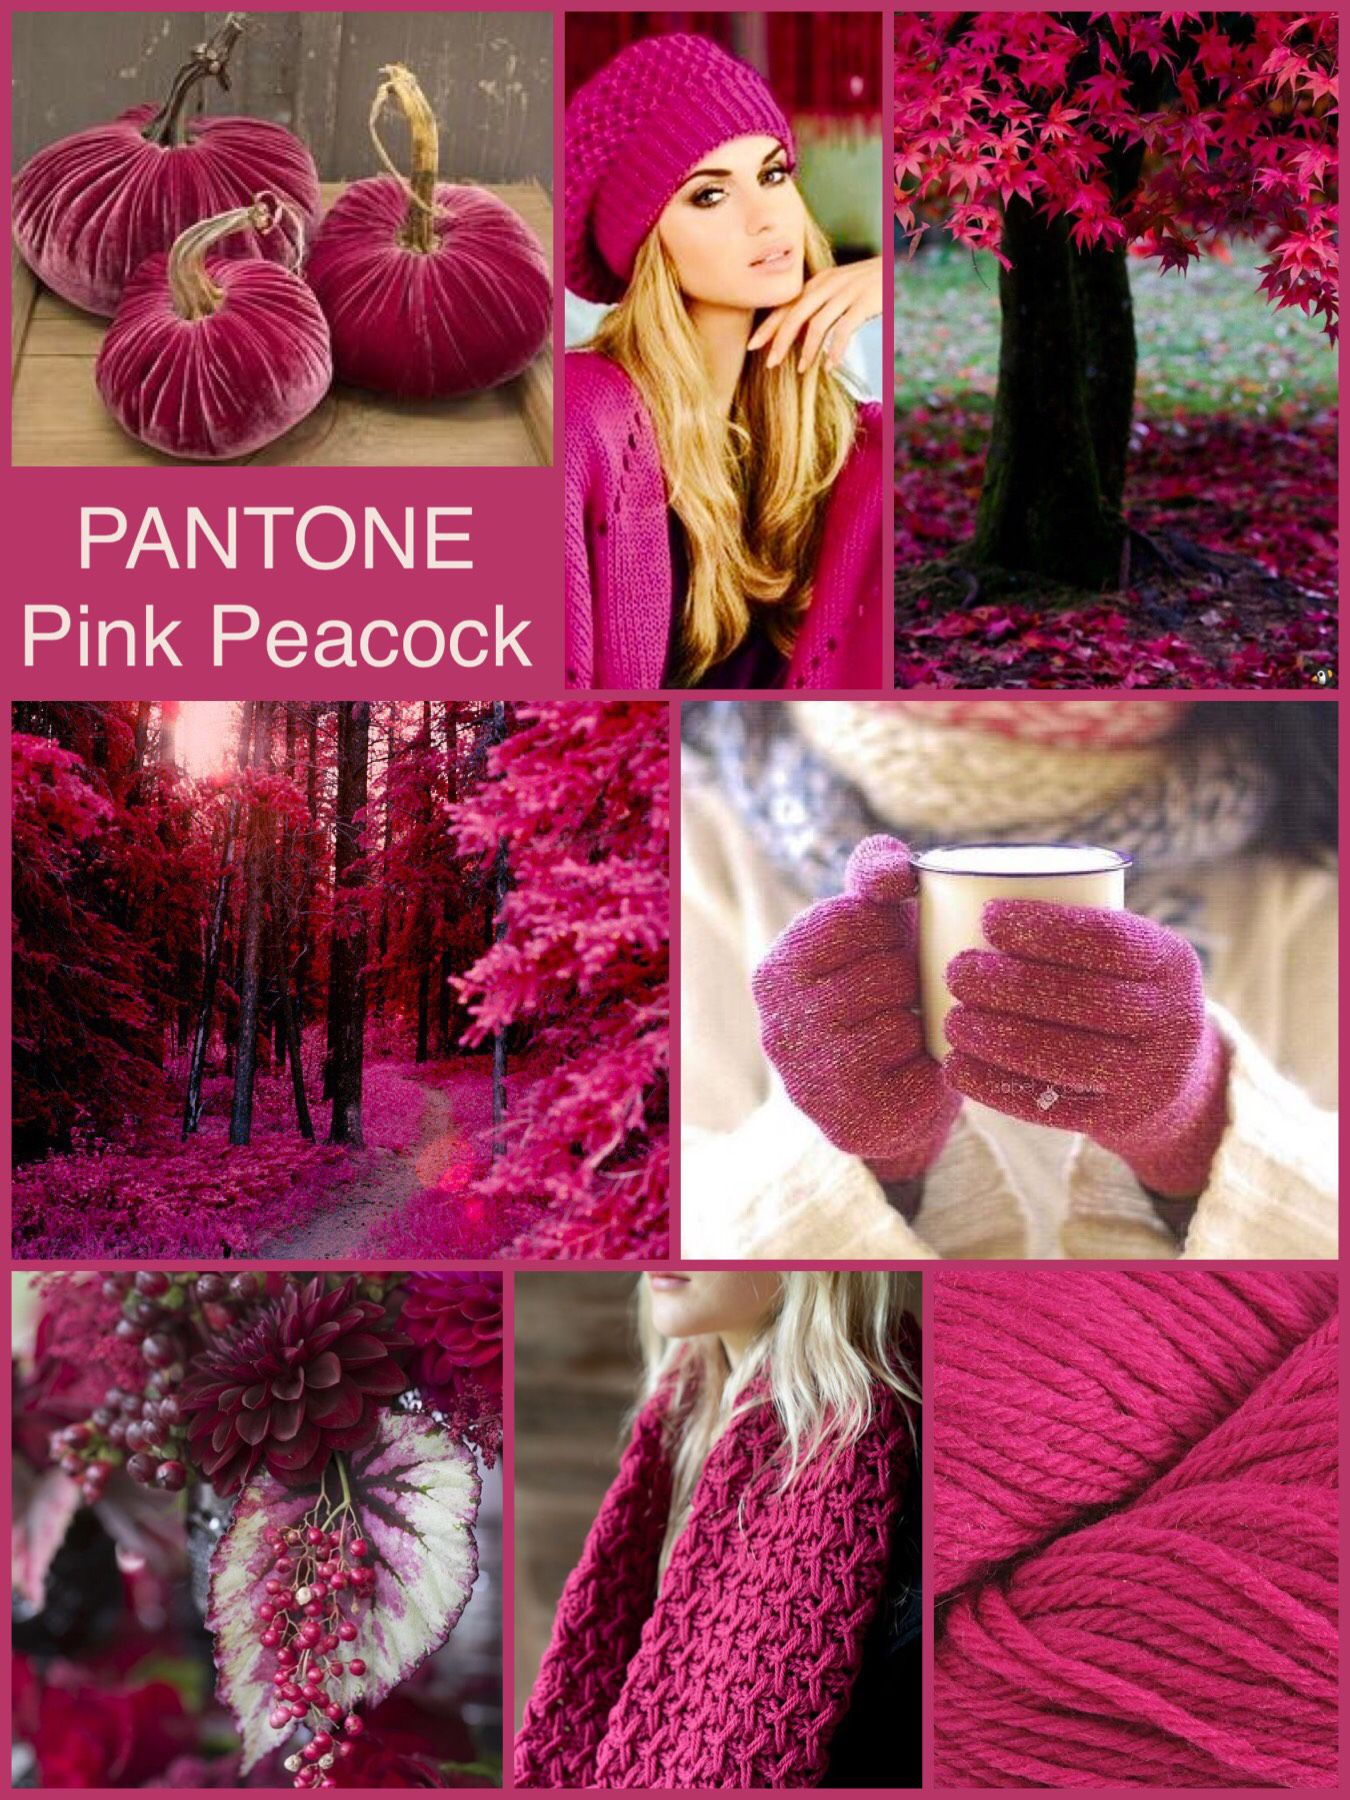 PANTONE Pink Peacock by Mimmi | Pantone Fall 2018 &Winter ...